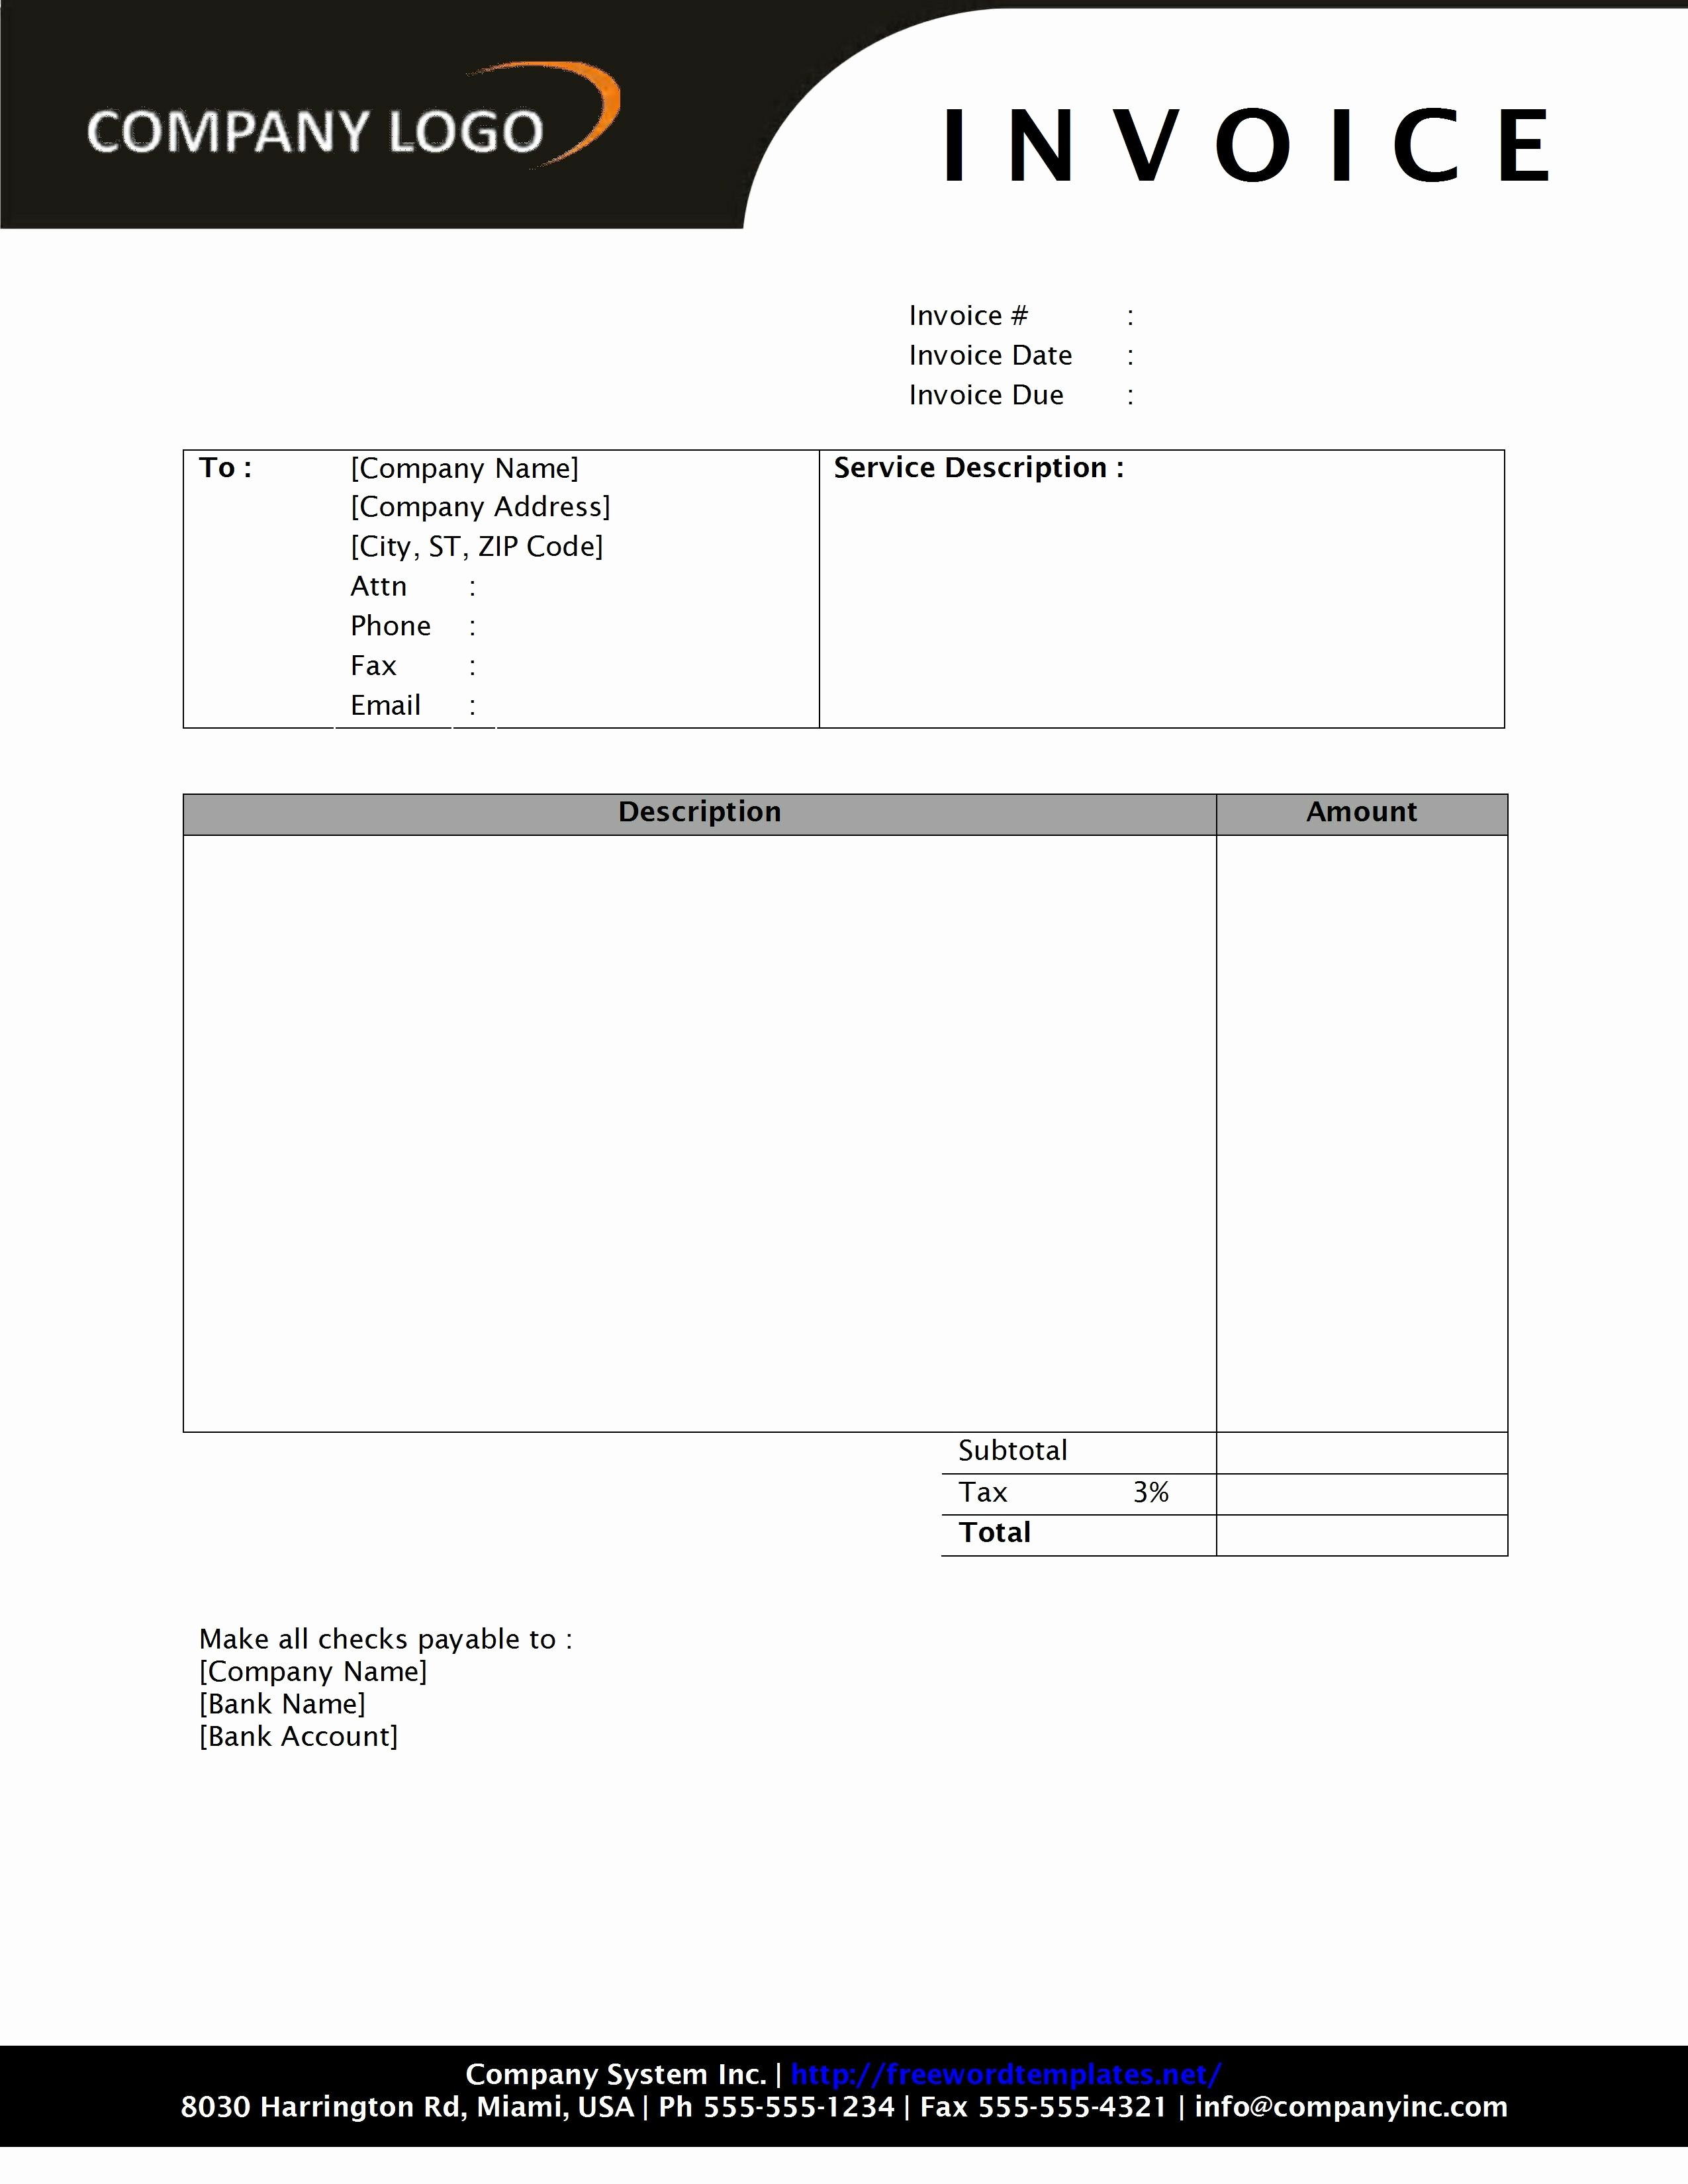 Invoice Template for Microsoft Word Unique Invoice Template Word 2010